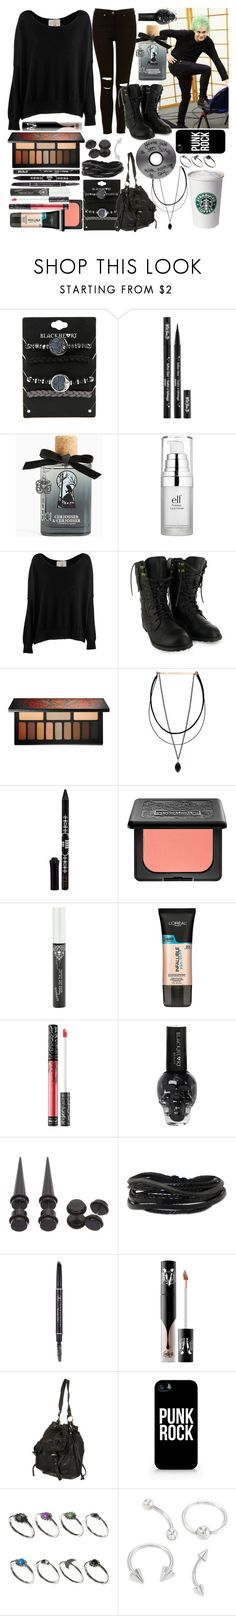 """""""Every night that we spend alone, it kills me thinking of you on your own, and I wish I was back home next to you"""" by thelyricsmatter ❤ liked on Polyvore featuring Kat Von D, Torrid, e.l.f., Friendly Hunting, Anna Sui, L'Oréal Paris, Gioelli, Anastasia Beverly Hills, Samsung and ASOS"""